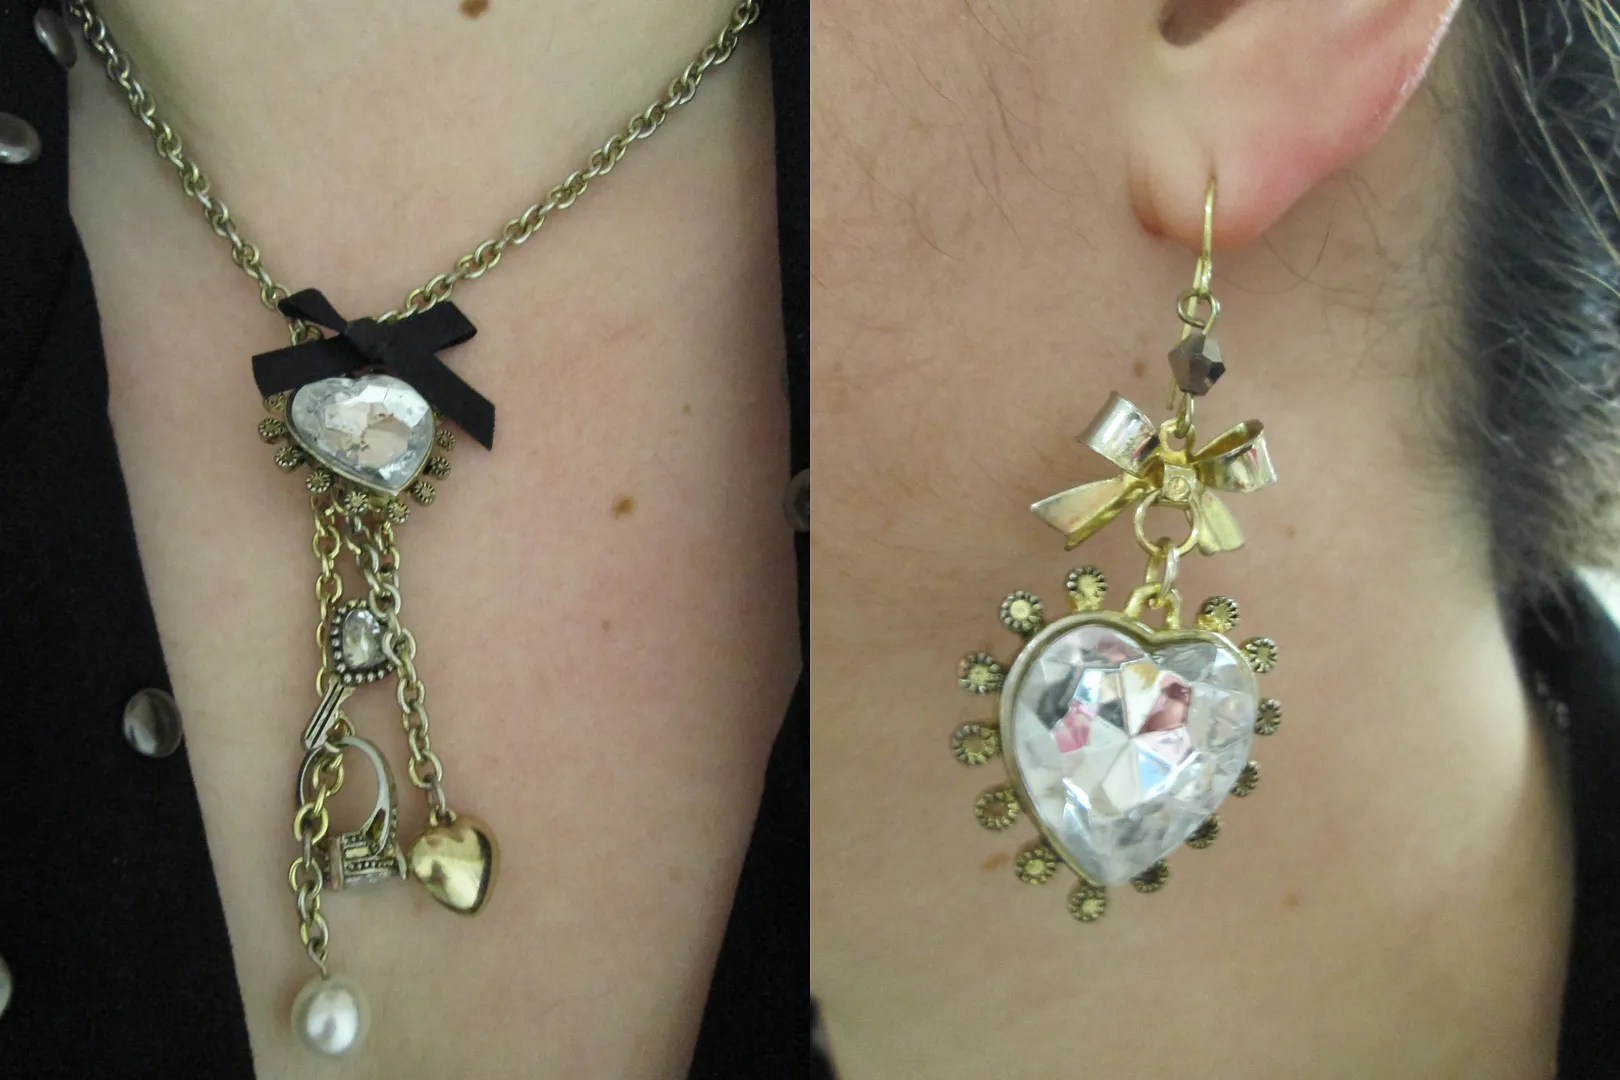 betsey johnson-like heart charm necklace and earrings